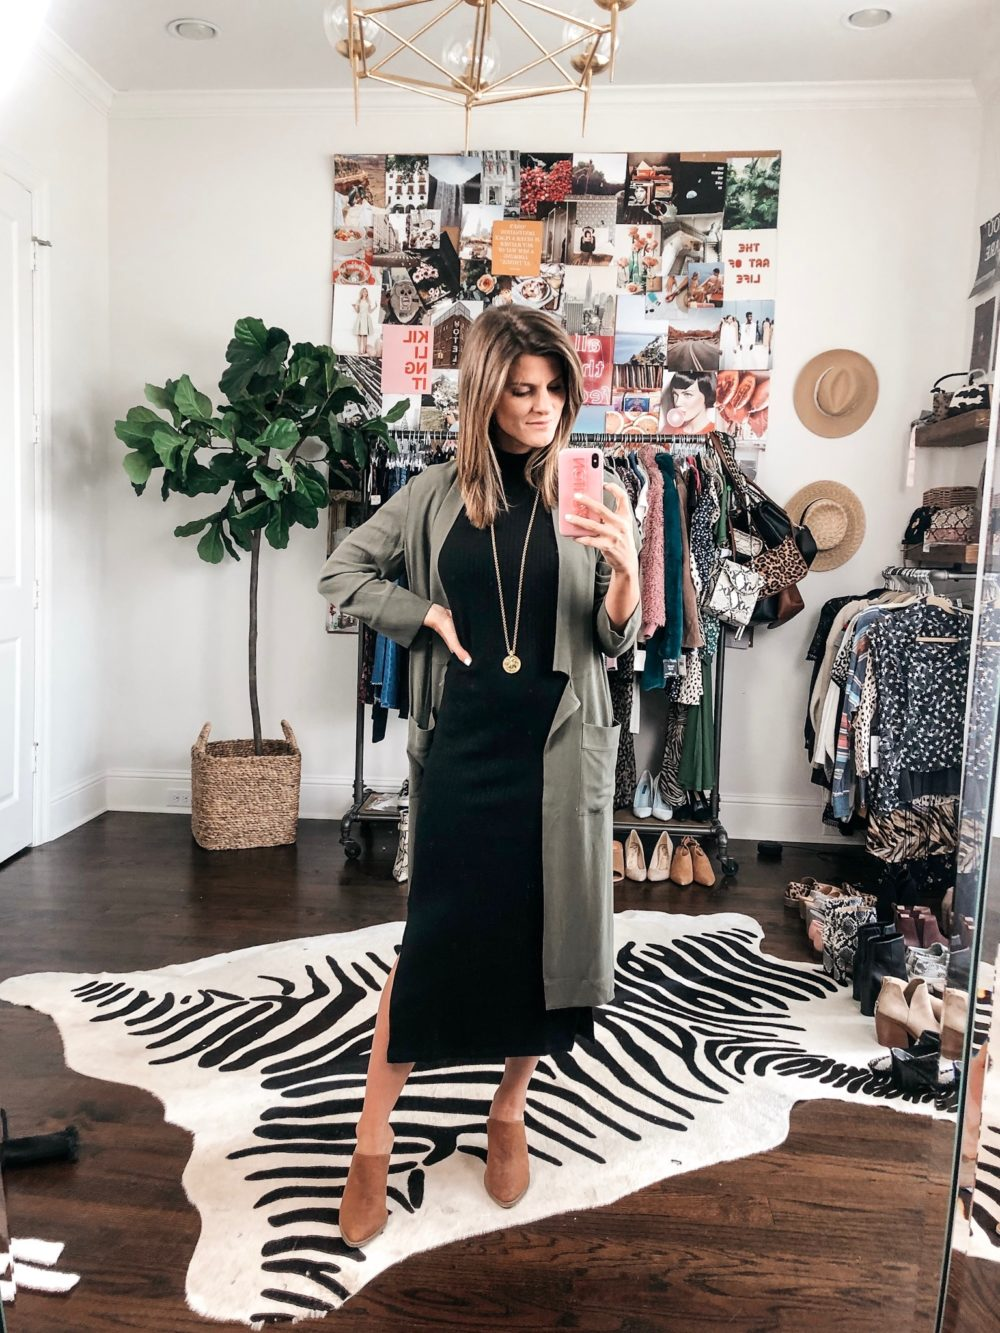 brighton keller wearing black midi dress with mules and olive green jacket and gold necklace